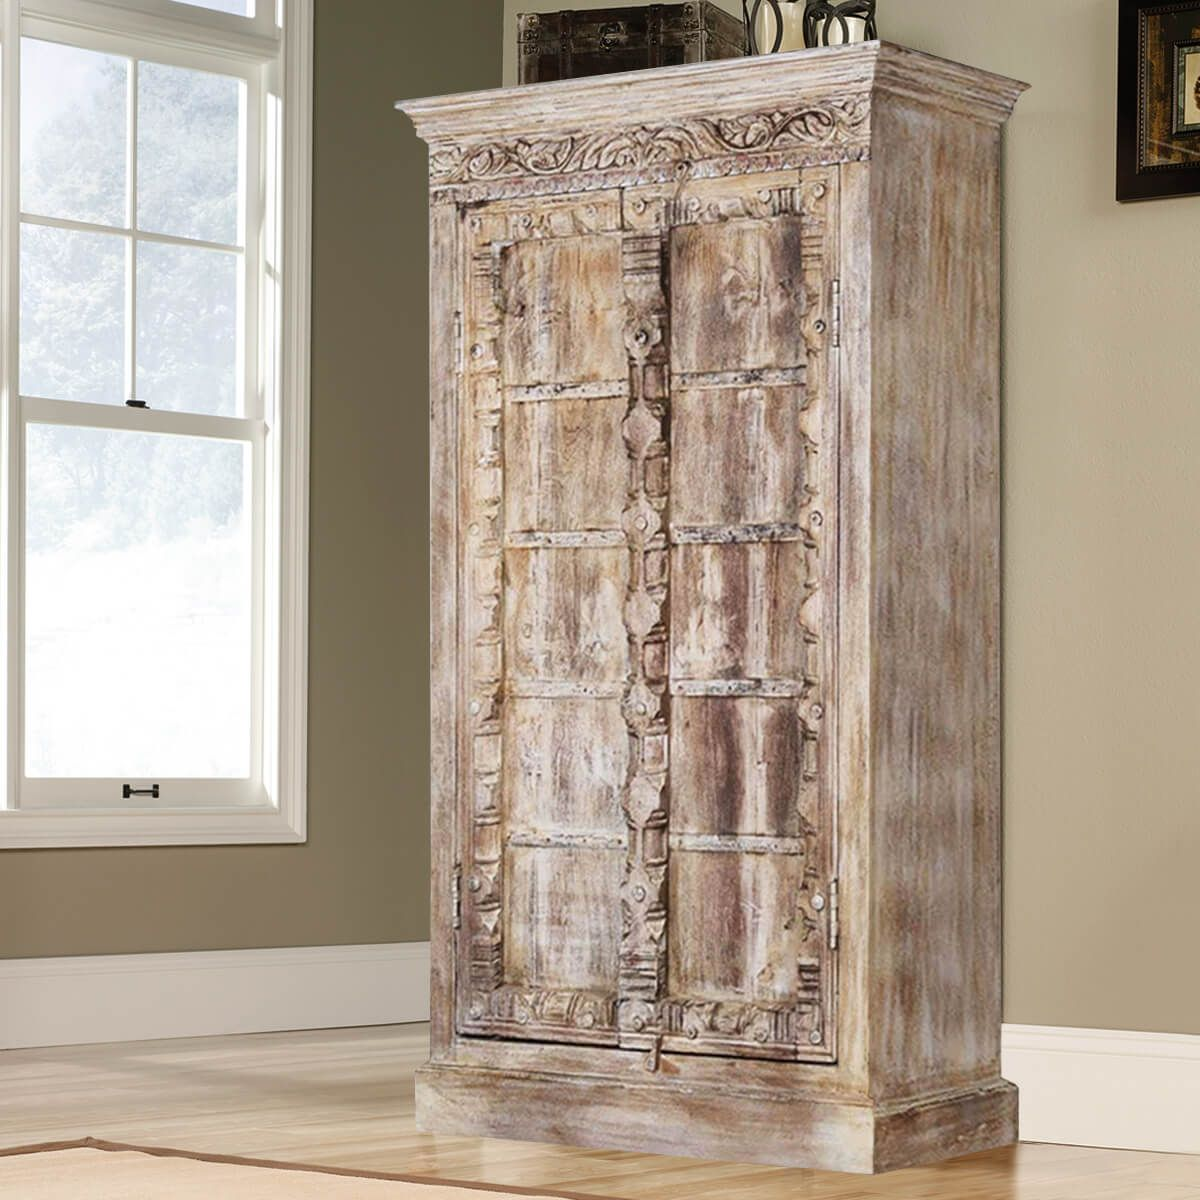 Antique white rustic solid reclaimed wood 2 door tall